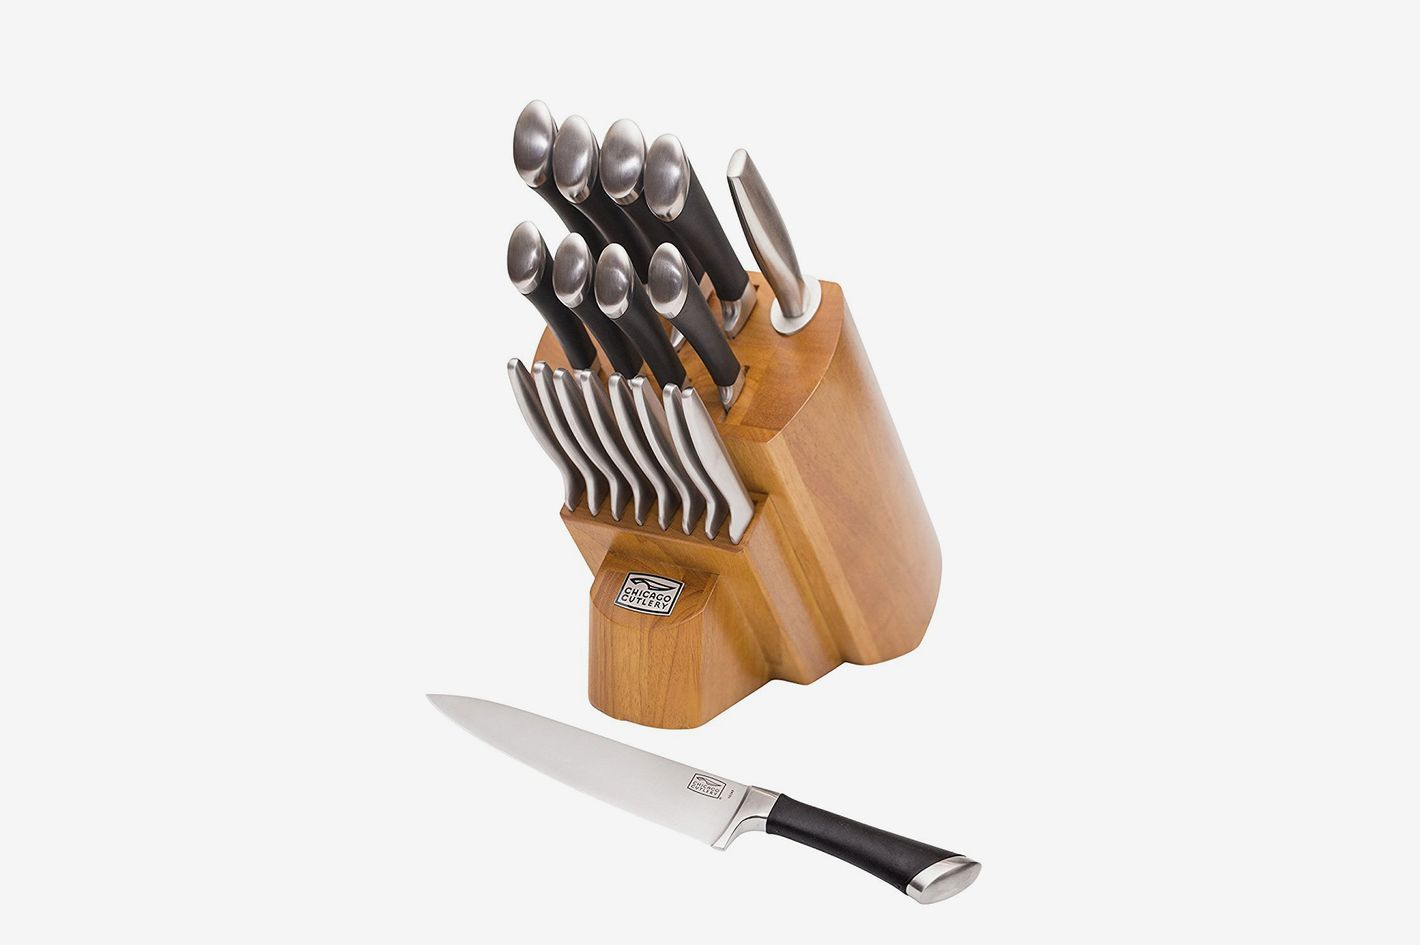 17 Best Kitchen-Knife Sets and Reviews 2018